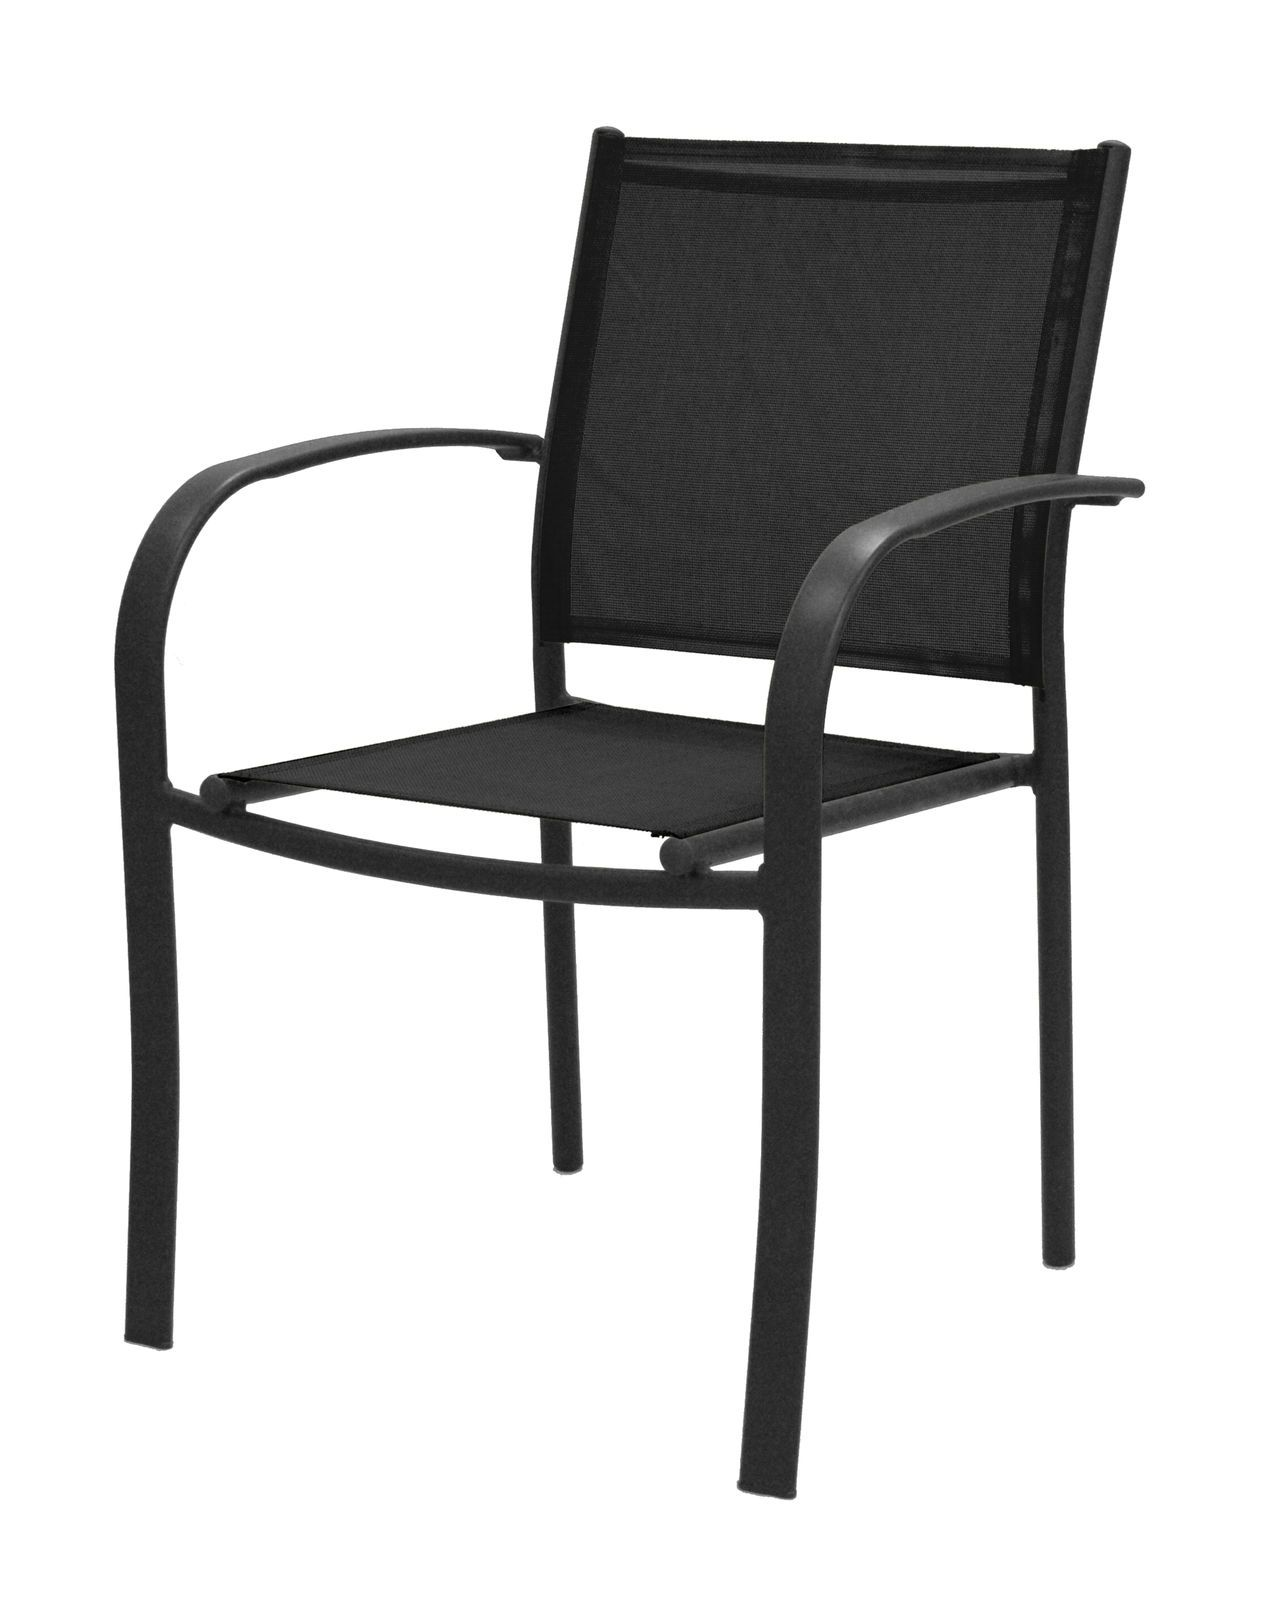 Black Sling Low-back Chair AT HOME STORE | Outdoor Room/Porch ...